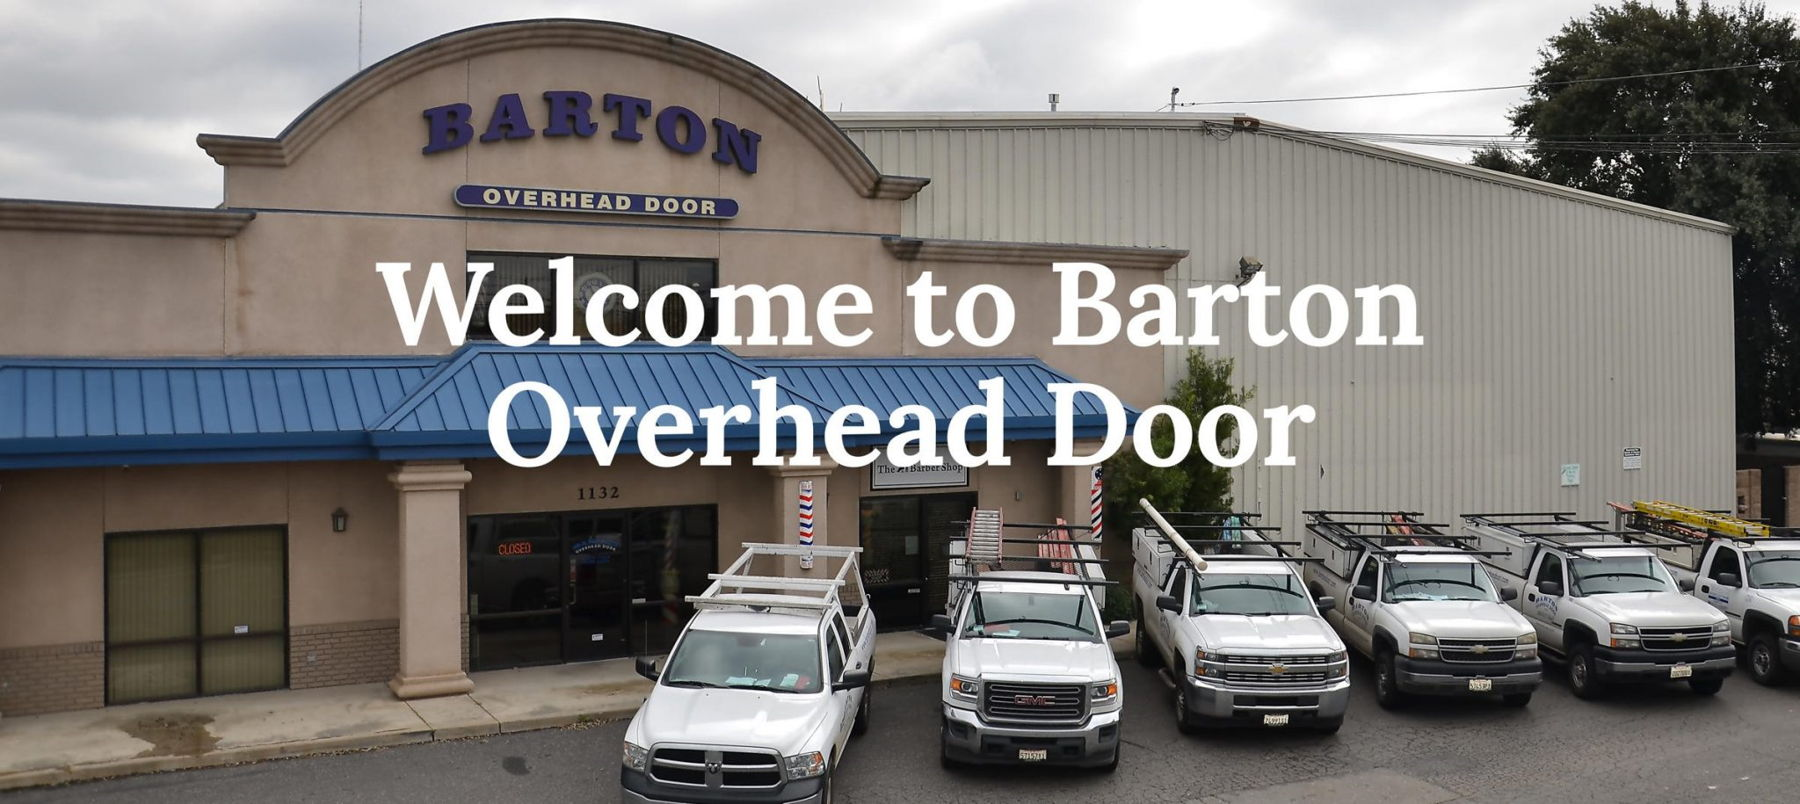 Welcome to Barton Overhead Door, Inc. We service and install garage doors in Modesto, Sonora, and surrounding areas.